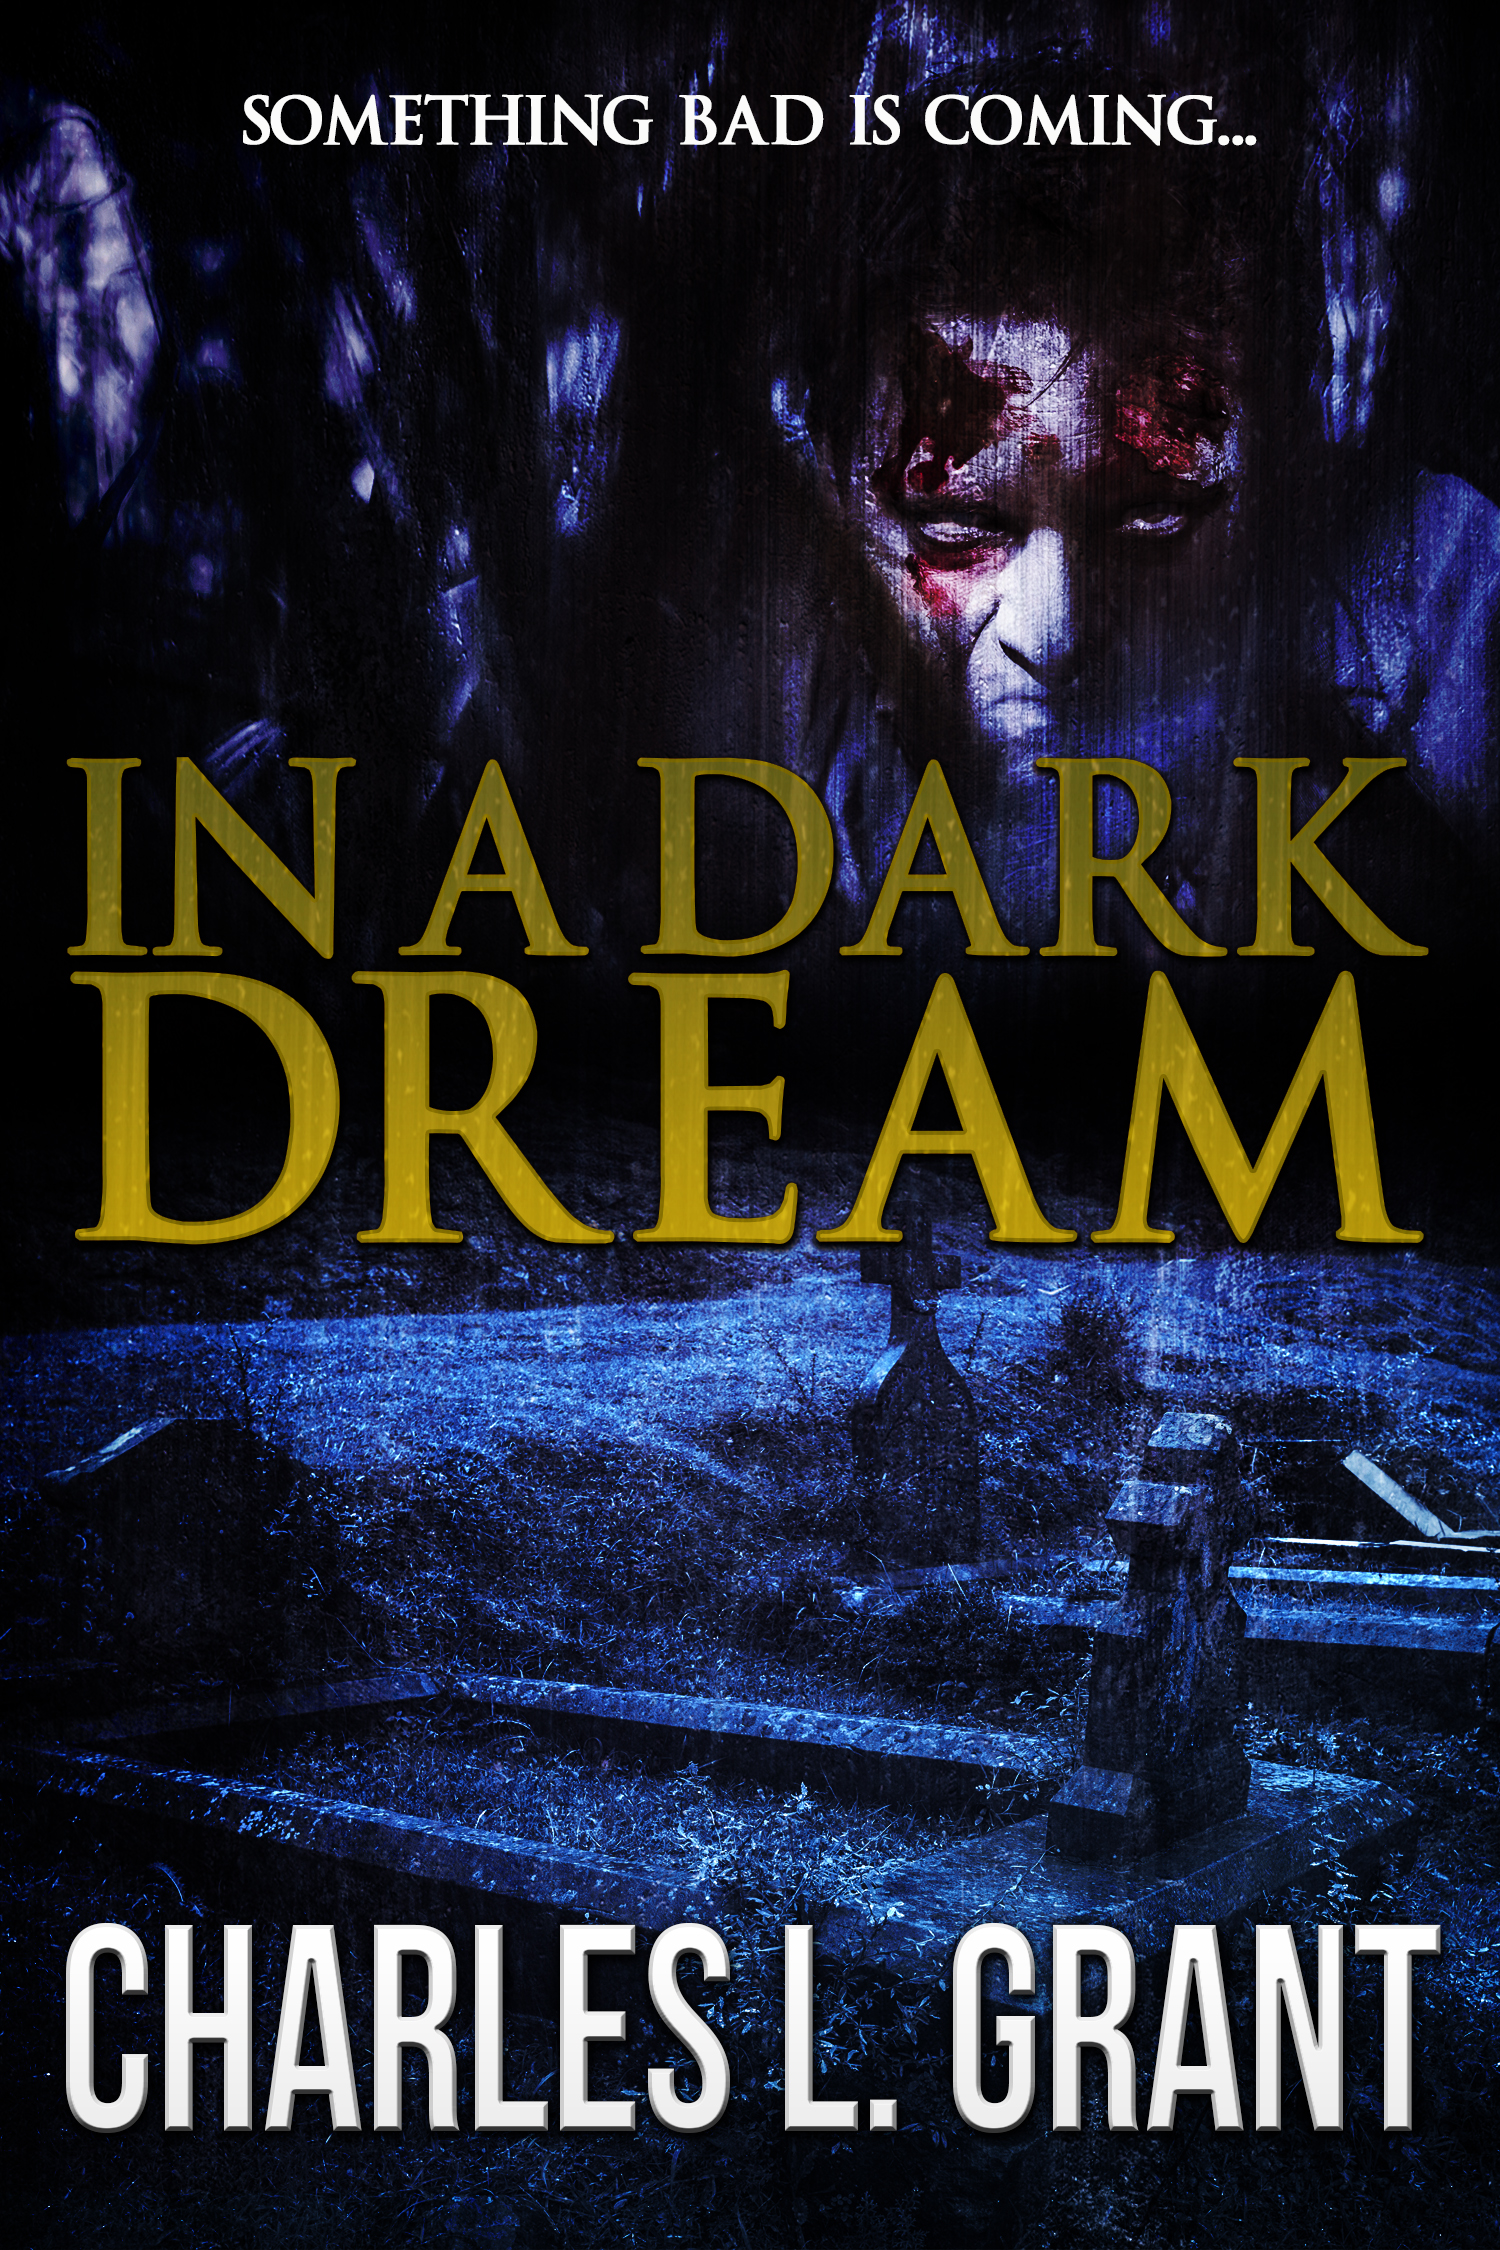 dark dreams synopsis Buy it now buy in my dark dreams now at book of the month club synopsis in the past three months, three brutal murders were committed in the ritzy area of west los angeles—each one on the night of the full moon lt luis cordova is heading a special undercover task force in search of the killer before he can strike again.